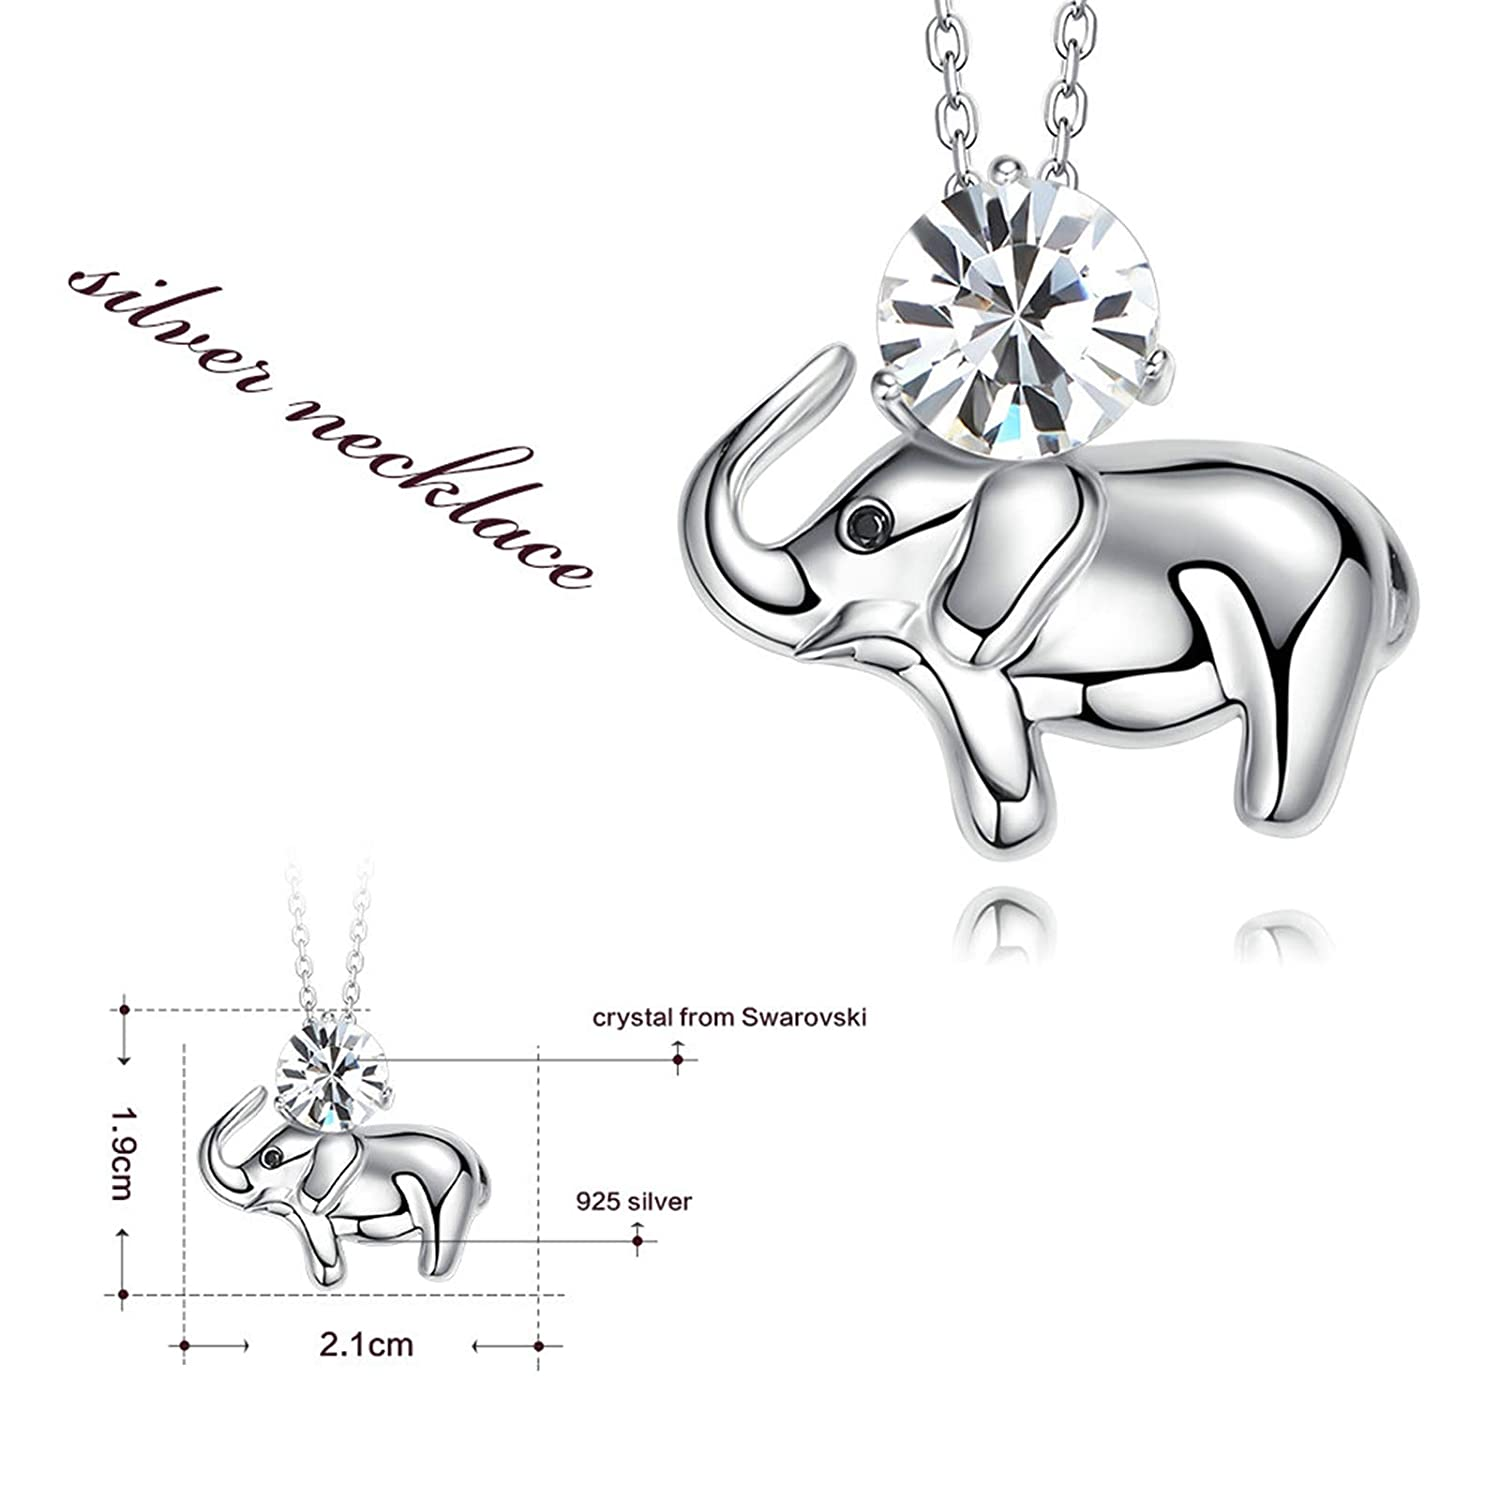 Adisaer Crystal Necklace Citrine Sterling Silver Plated Round Cut White Cz Elephant Necklace for Women Girls